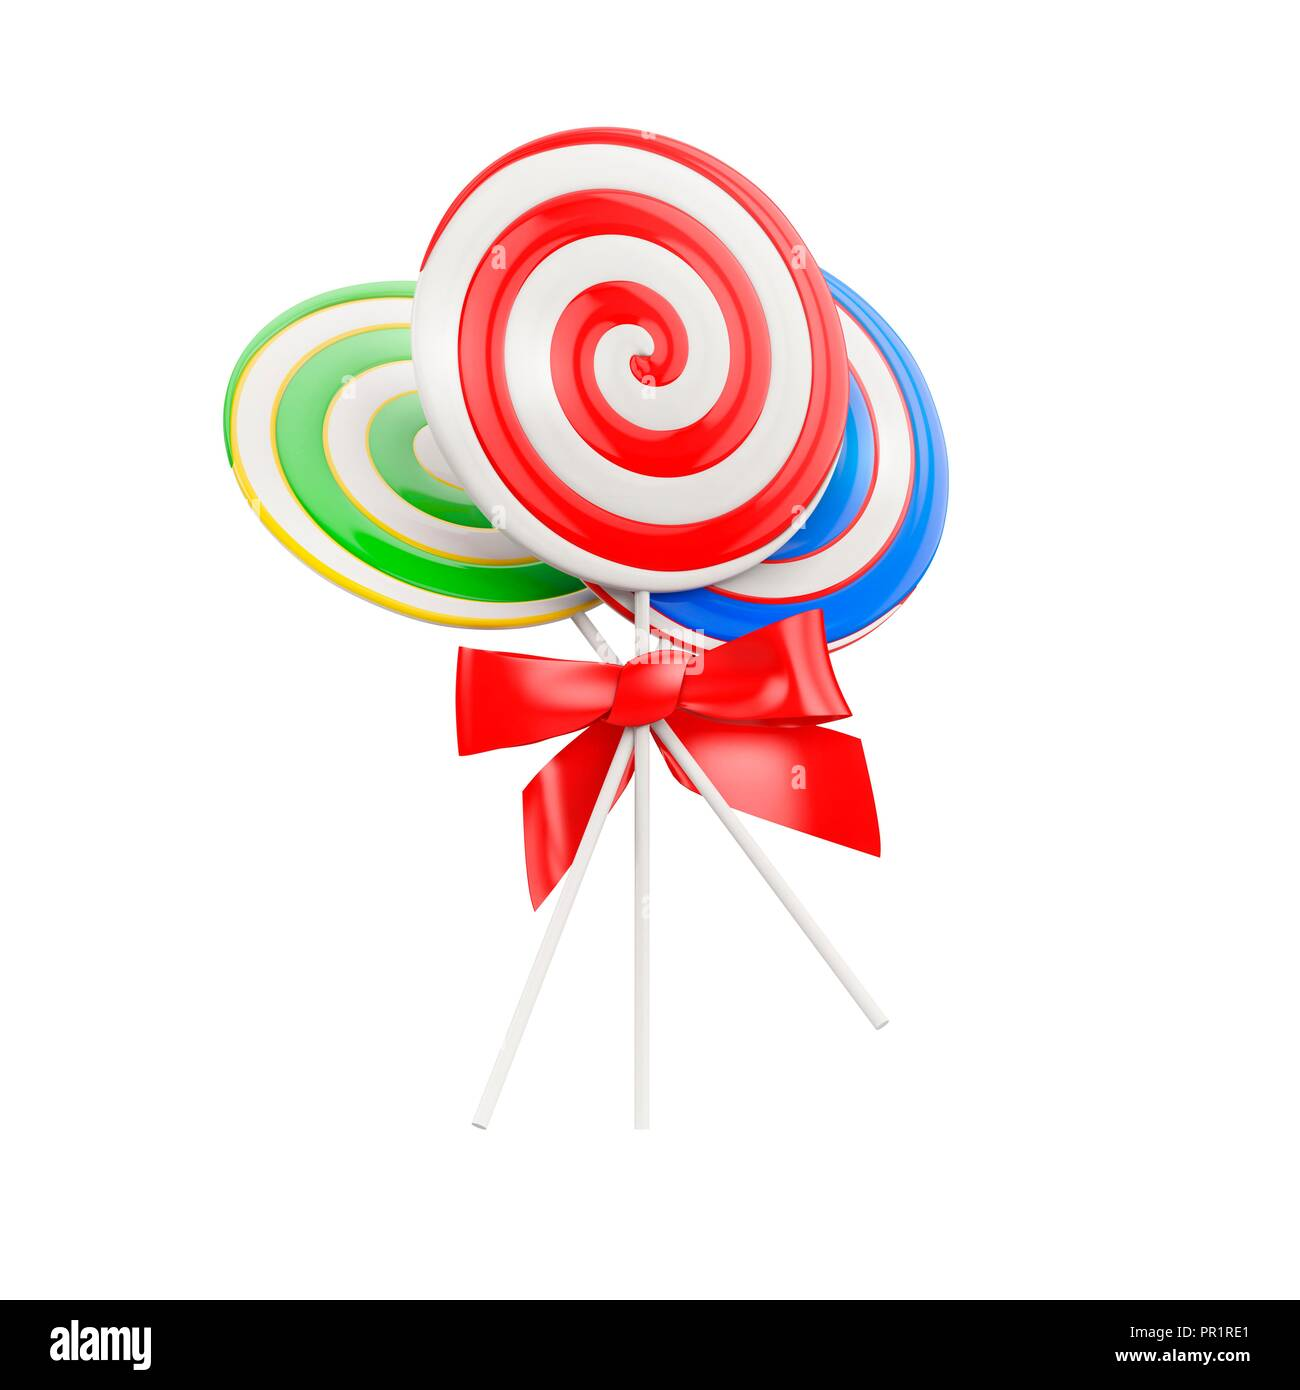 Lollipops with a red bow, illustration. Stock Photo